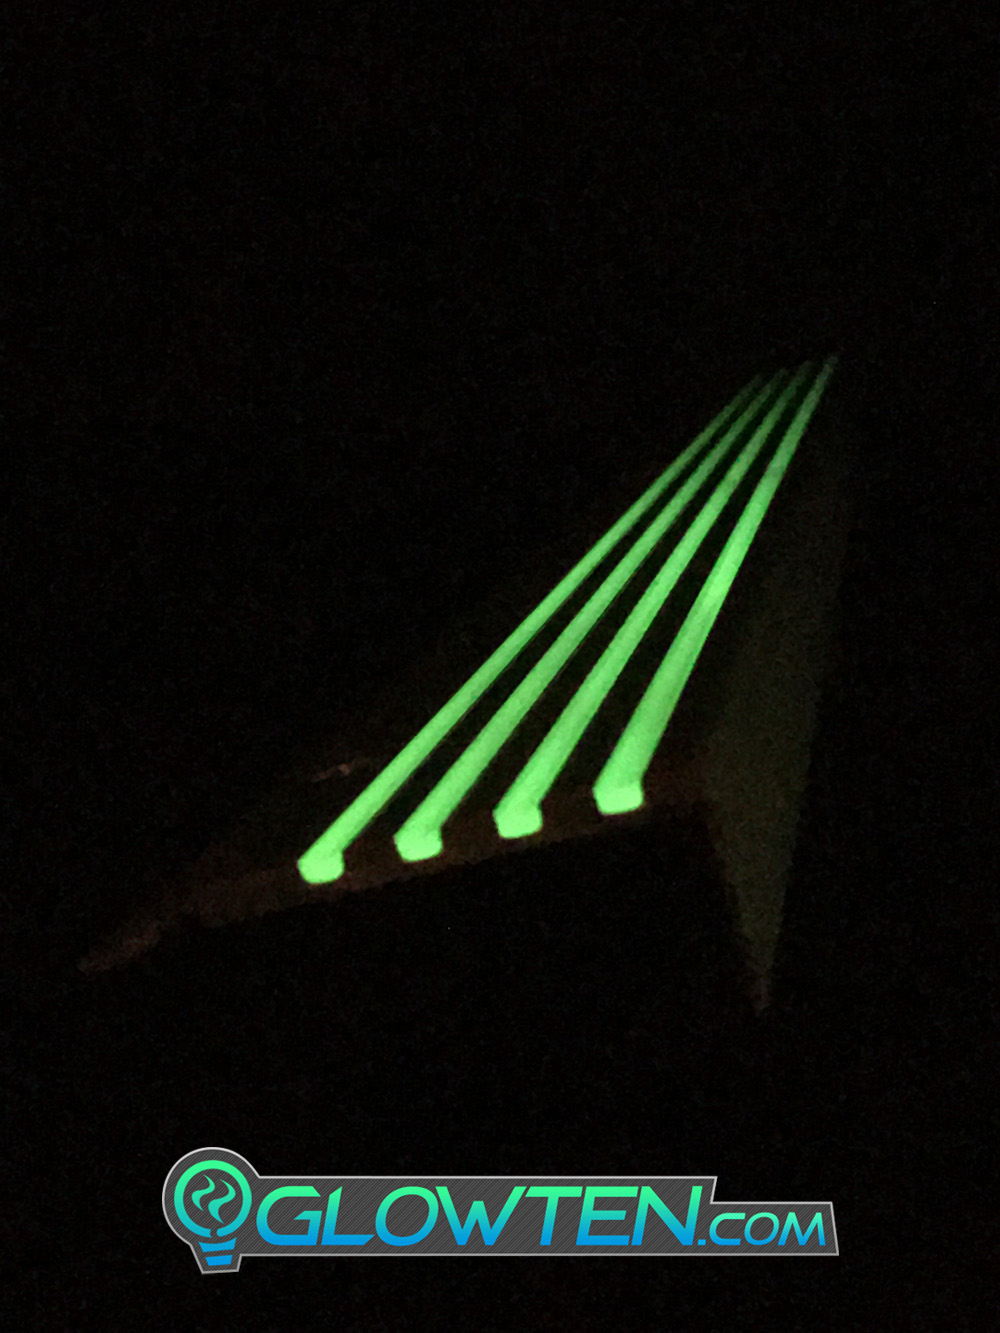 GLOWTEN.com - ANTI-SLIP STAIRS TREAD 4-BANDS FOURBANDS NOSING GLOW IN THE DARK LUMINOUS SAFETY STRIP All Purpose Out Door All Weather NON-SKID SEE BETTER AT NIGHT PREVENT FALLING GRIP STRENGTH FOR MINIMUM 31.5